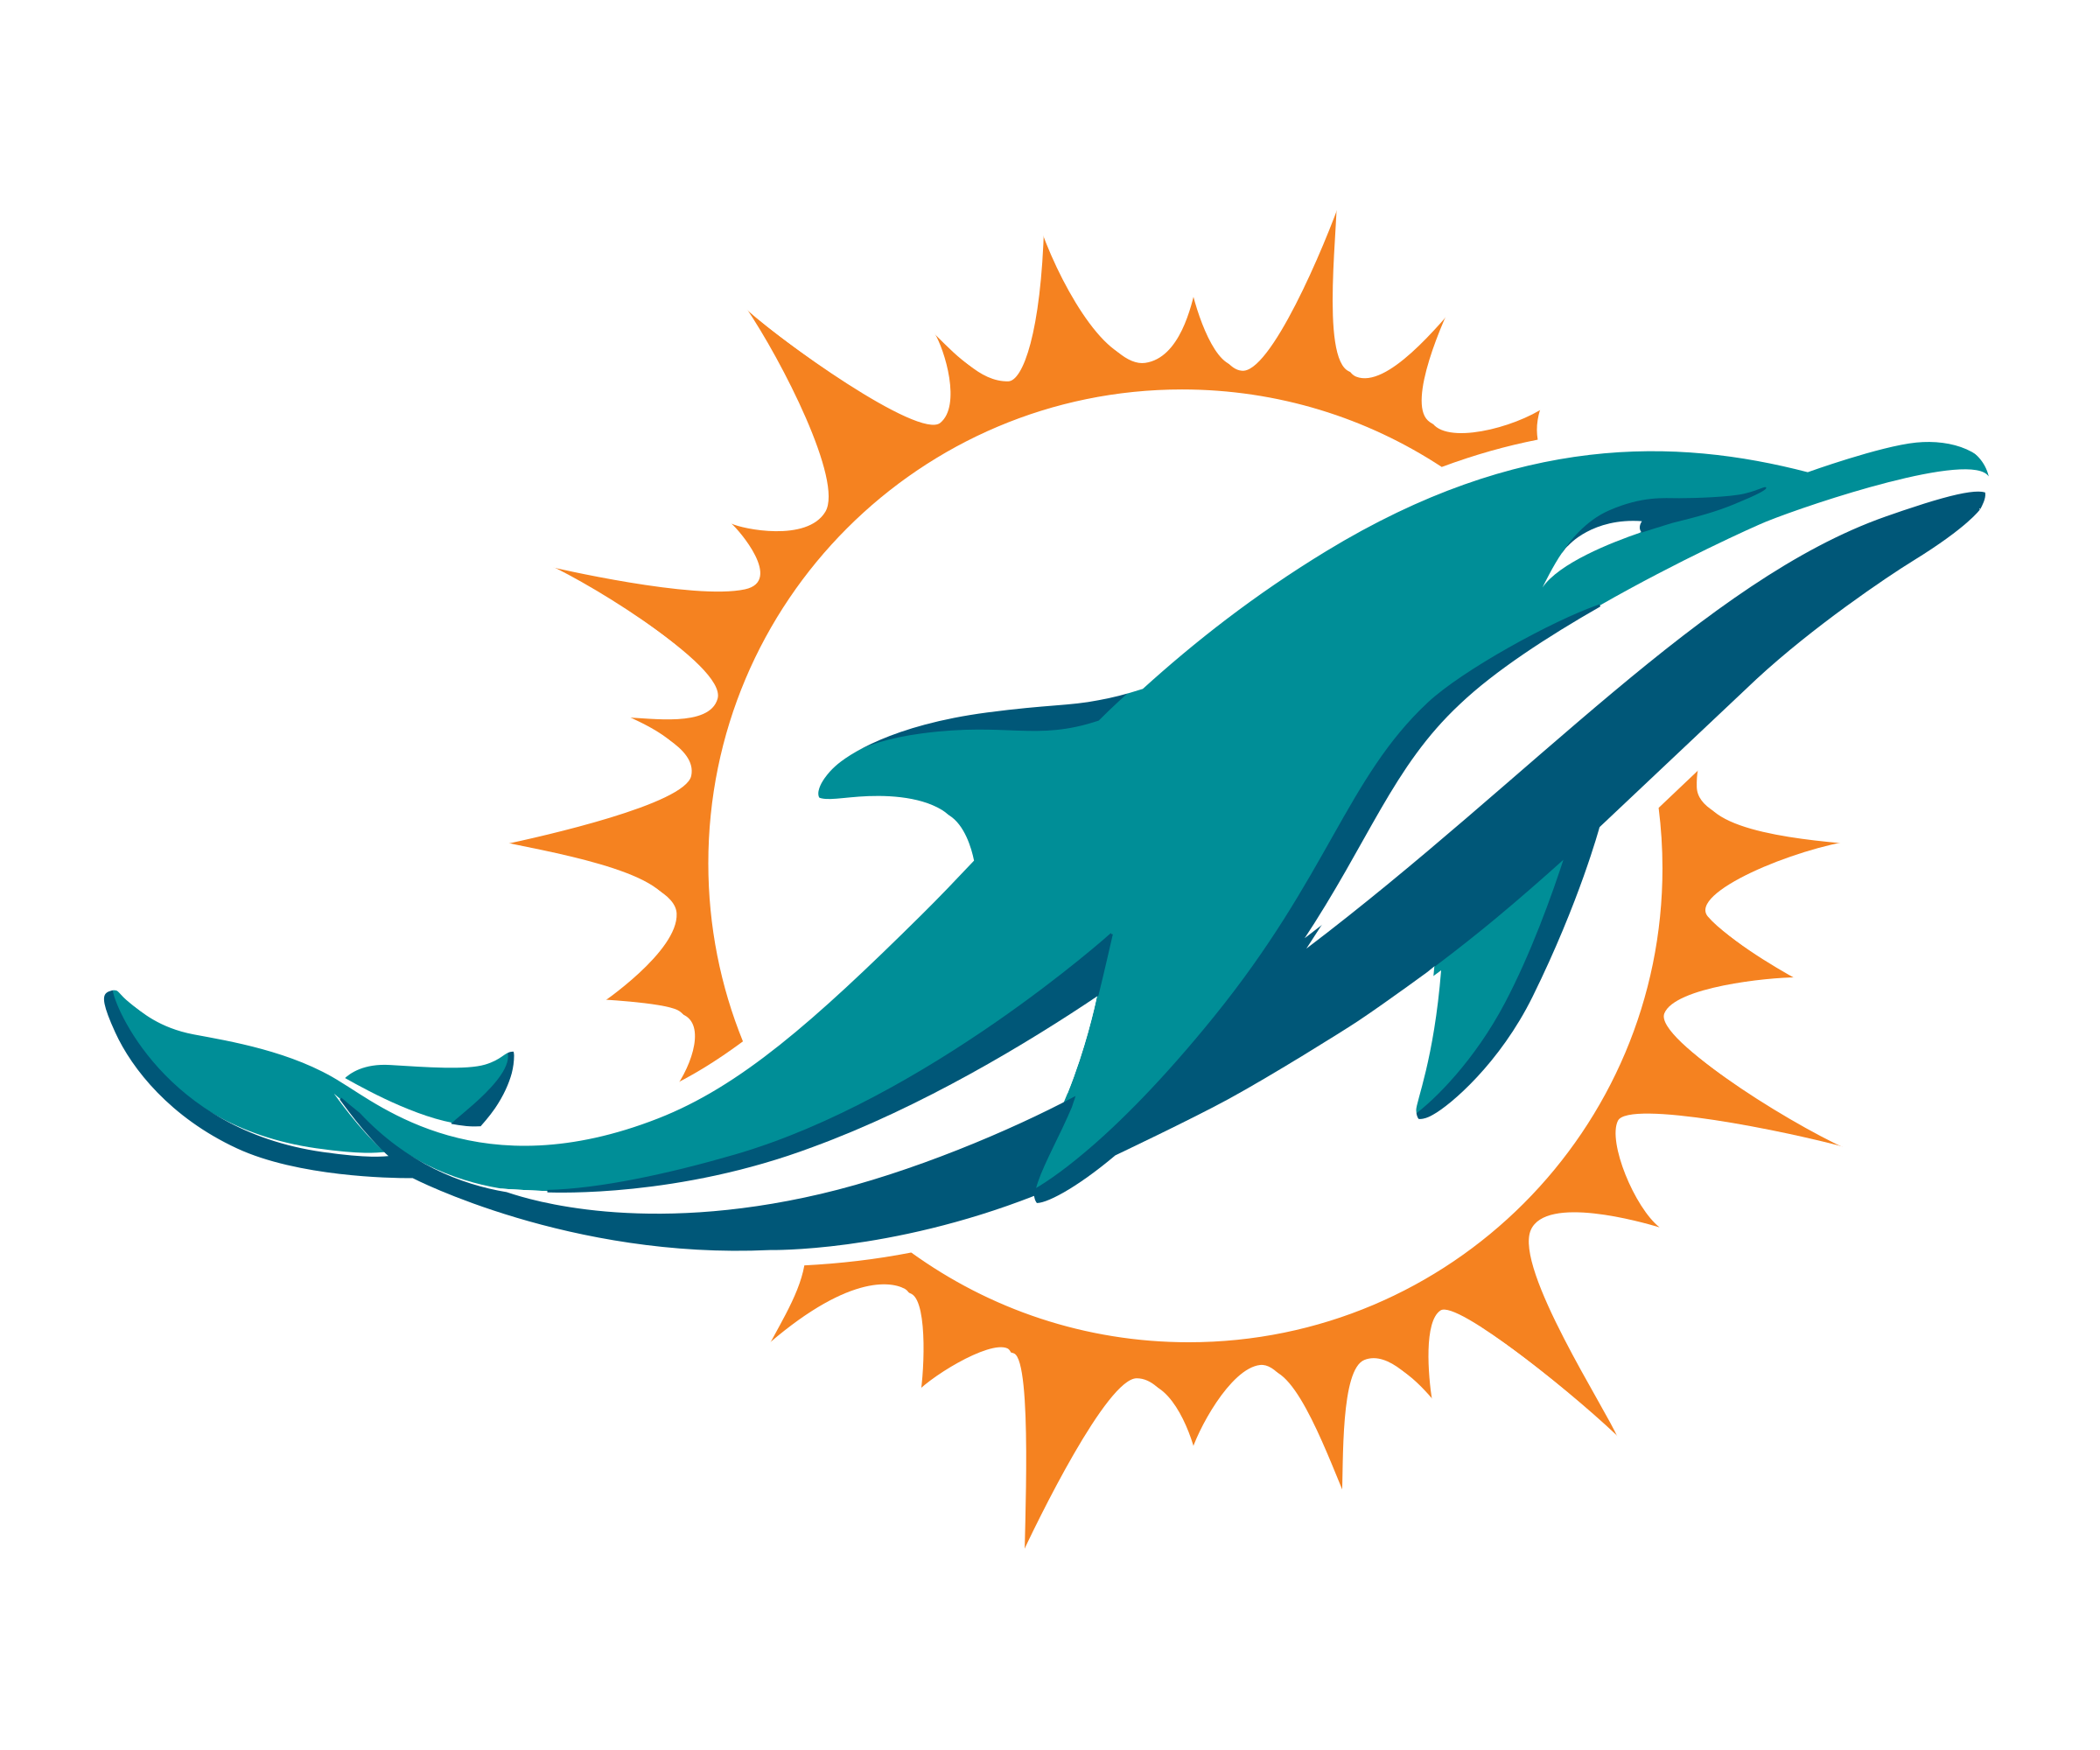 Dolphin clipart dolphin miami logo. Dolphins png transparent svg